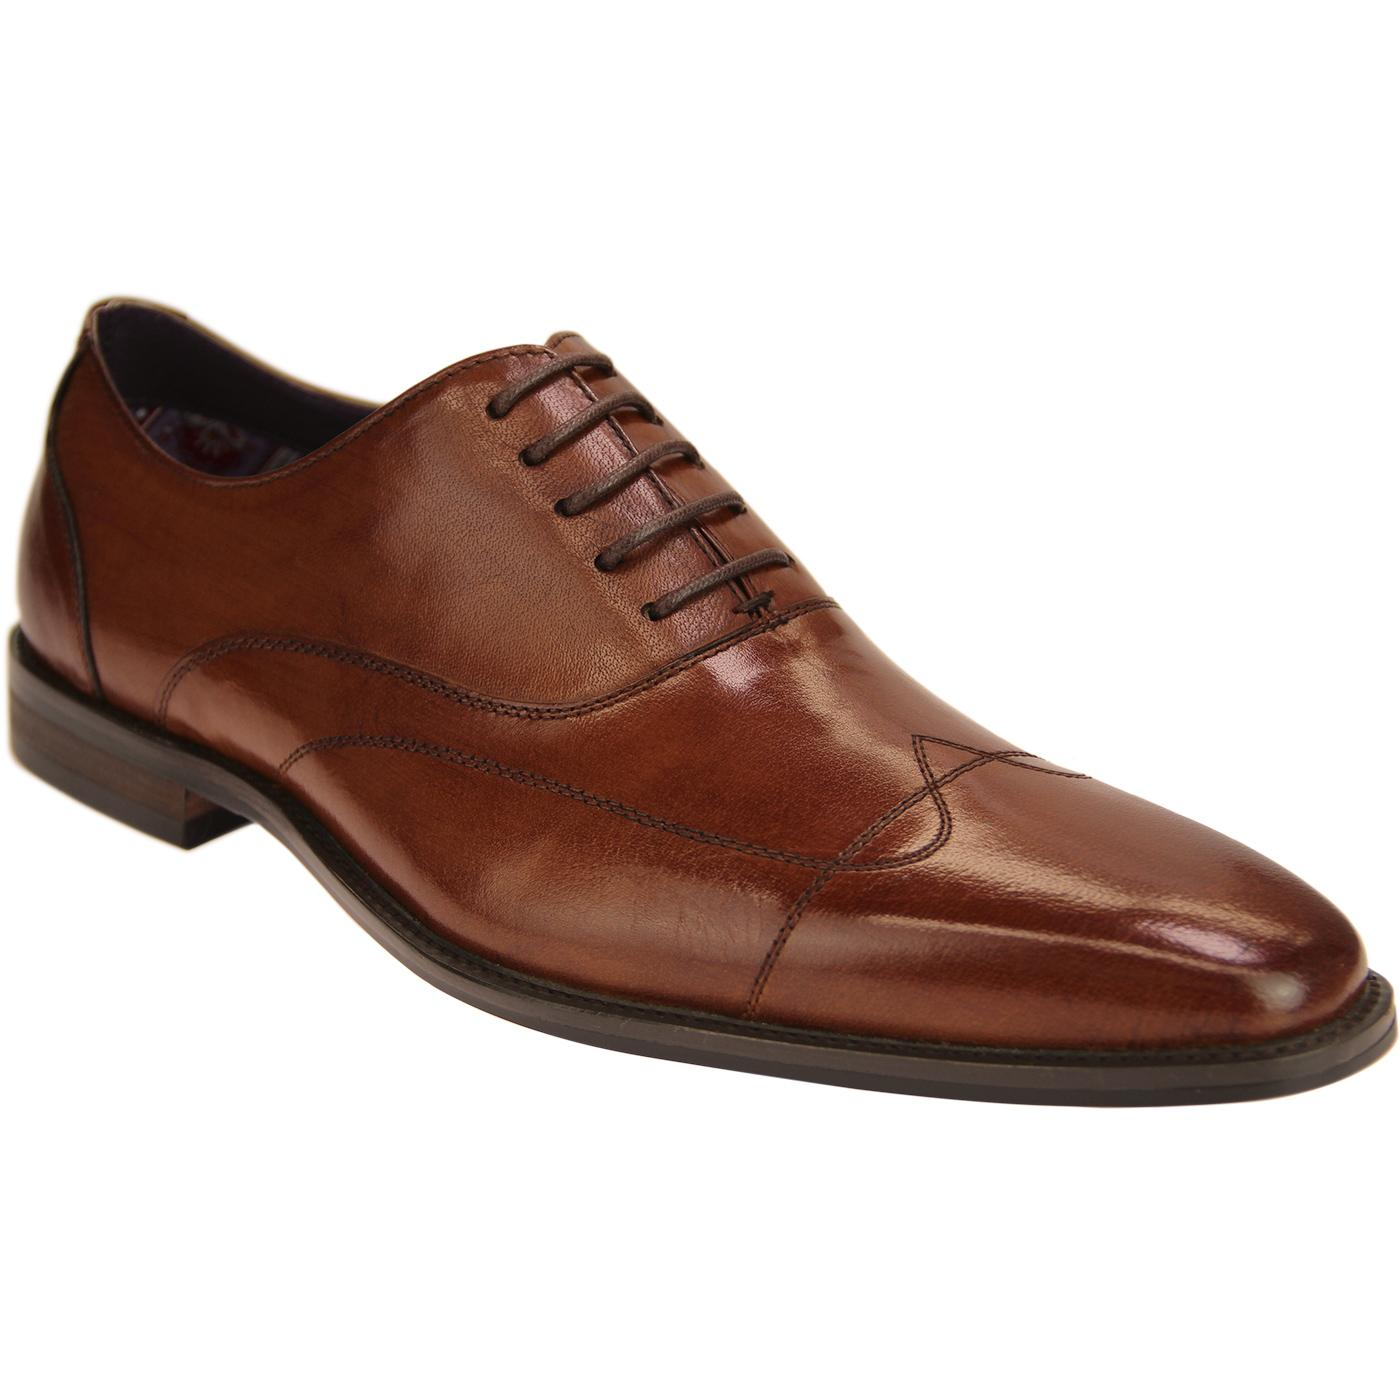 Dave PAOLO VANDINI Retro Stitched Wingtip shoes T